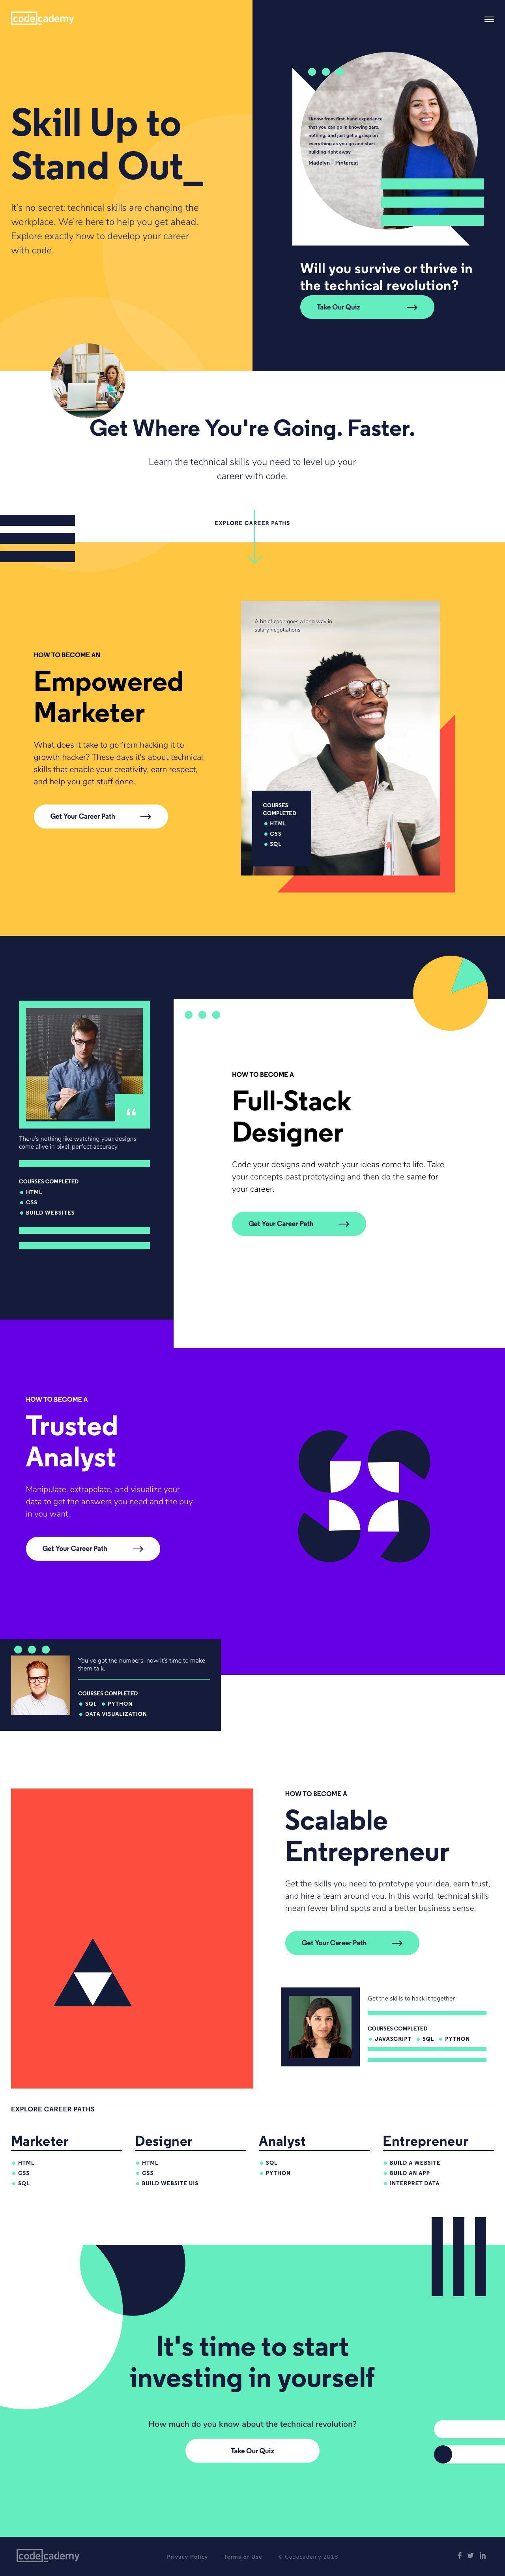 Codecademy Landing Page Design Inspiration Lapa Ninja Landing Page Design Best Landing Page Design Page Design